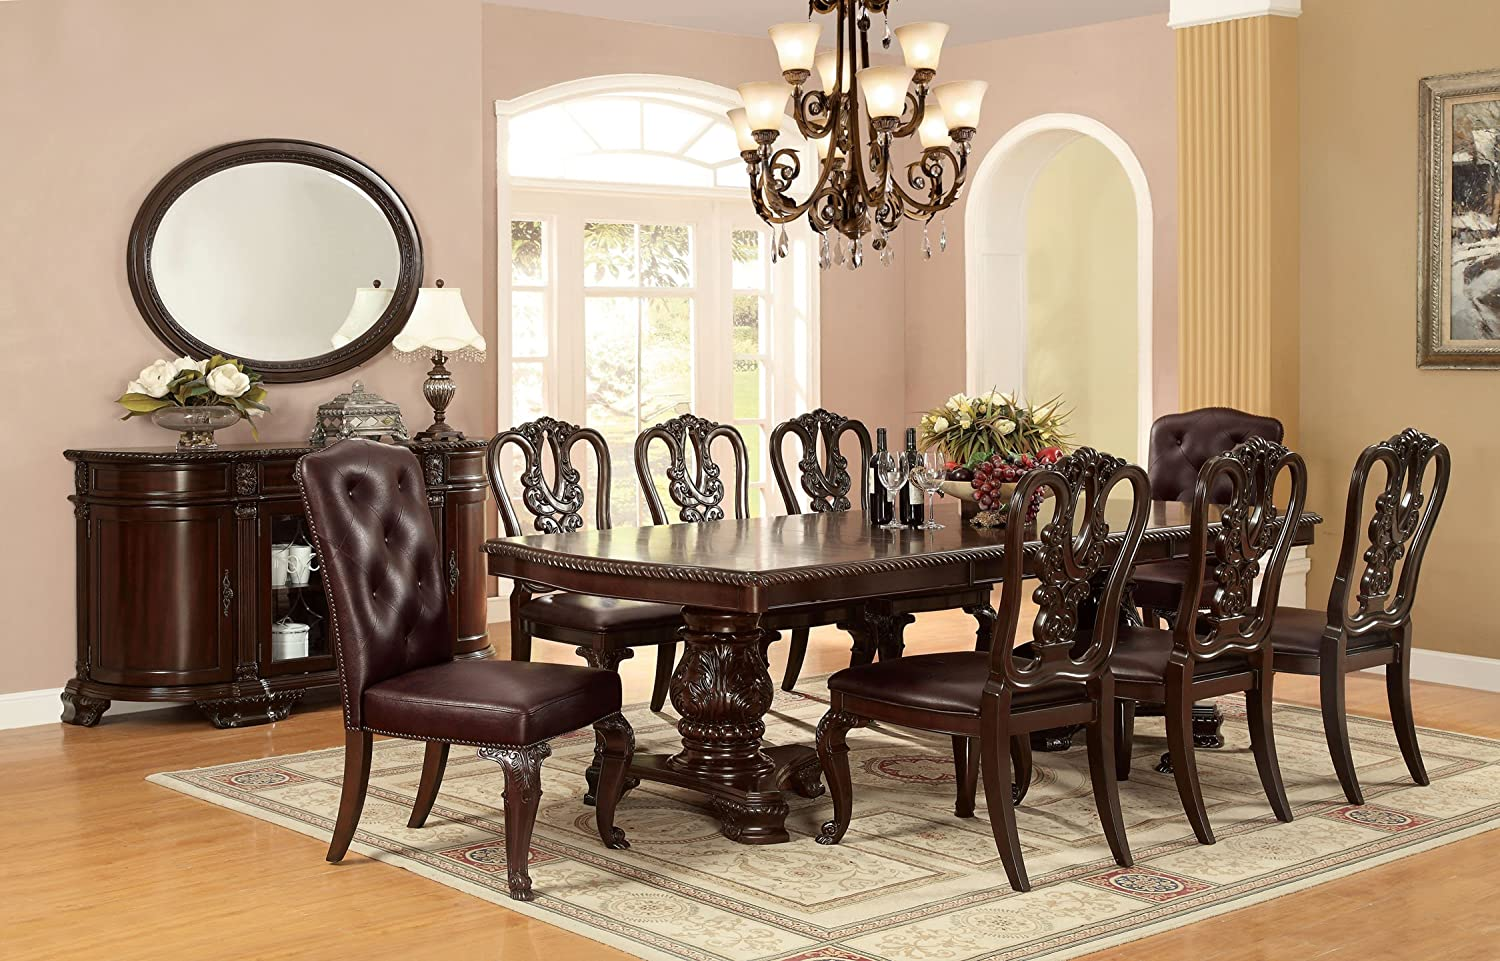 amazon com furniture of america evangelyn 7 piece dining set amazon com furniture of america evangelyn 7 piece dining set with wooden chairs cherry table chair sets